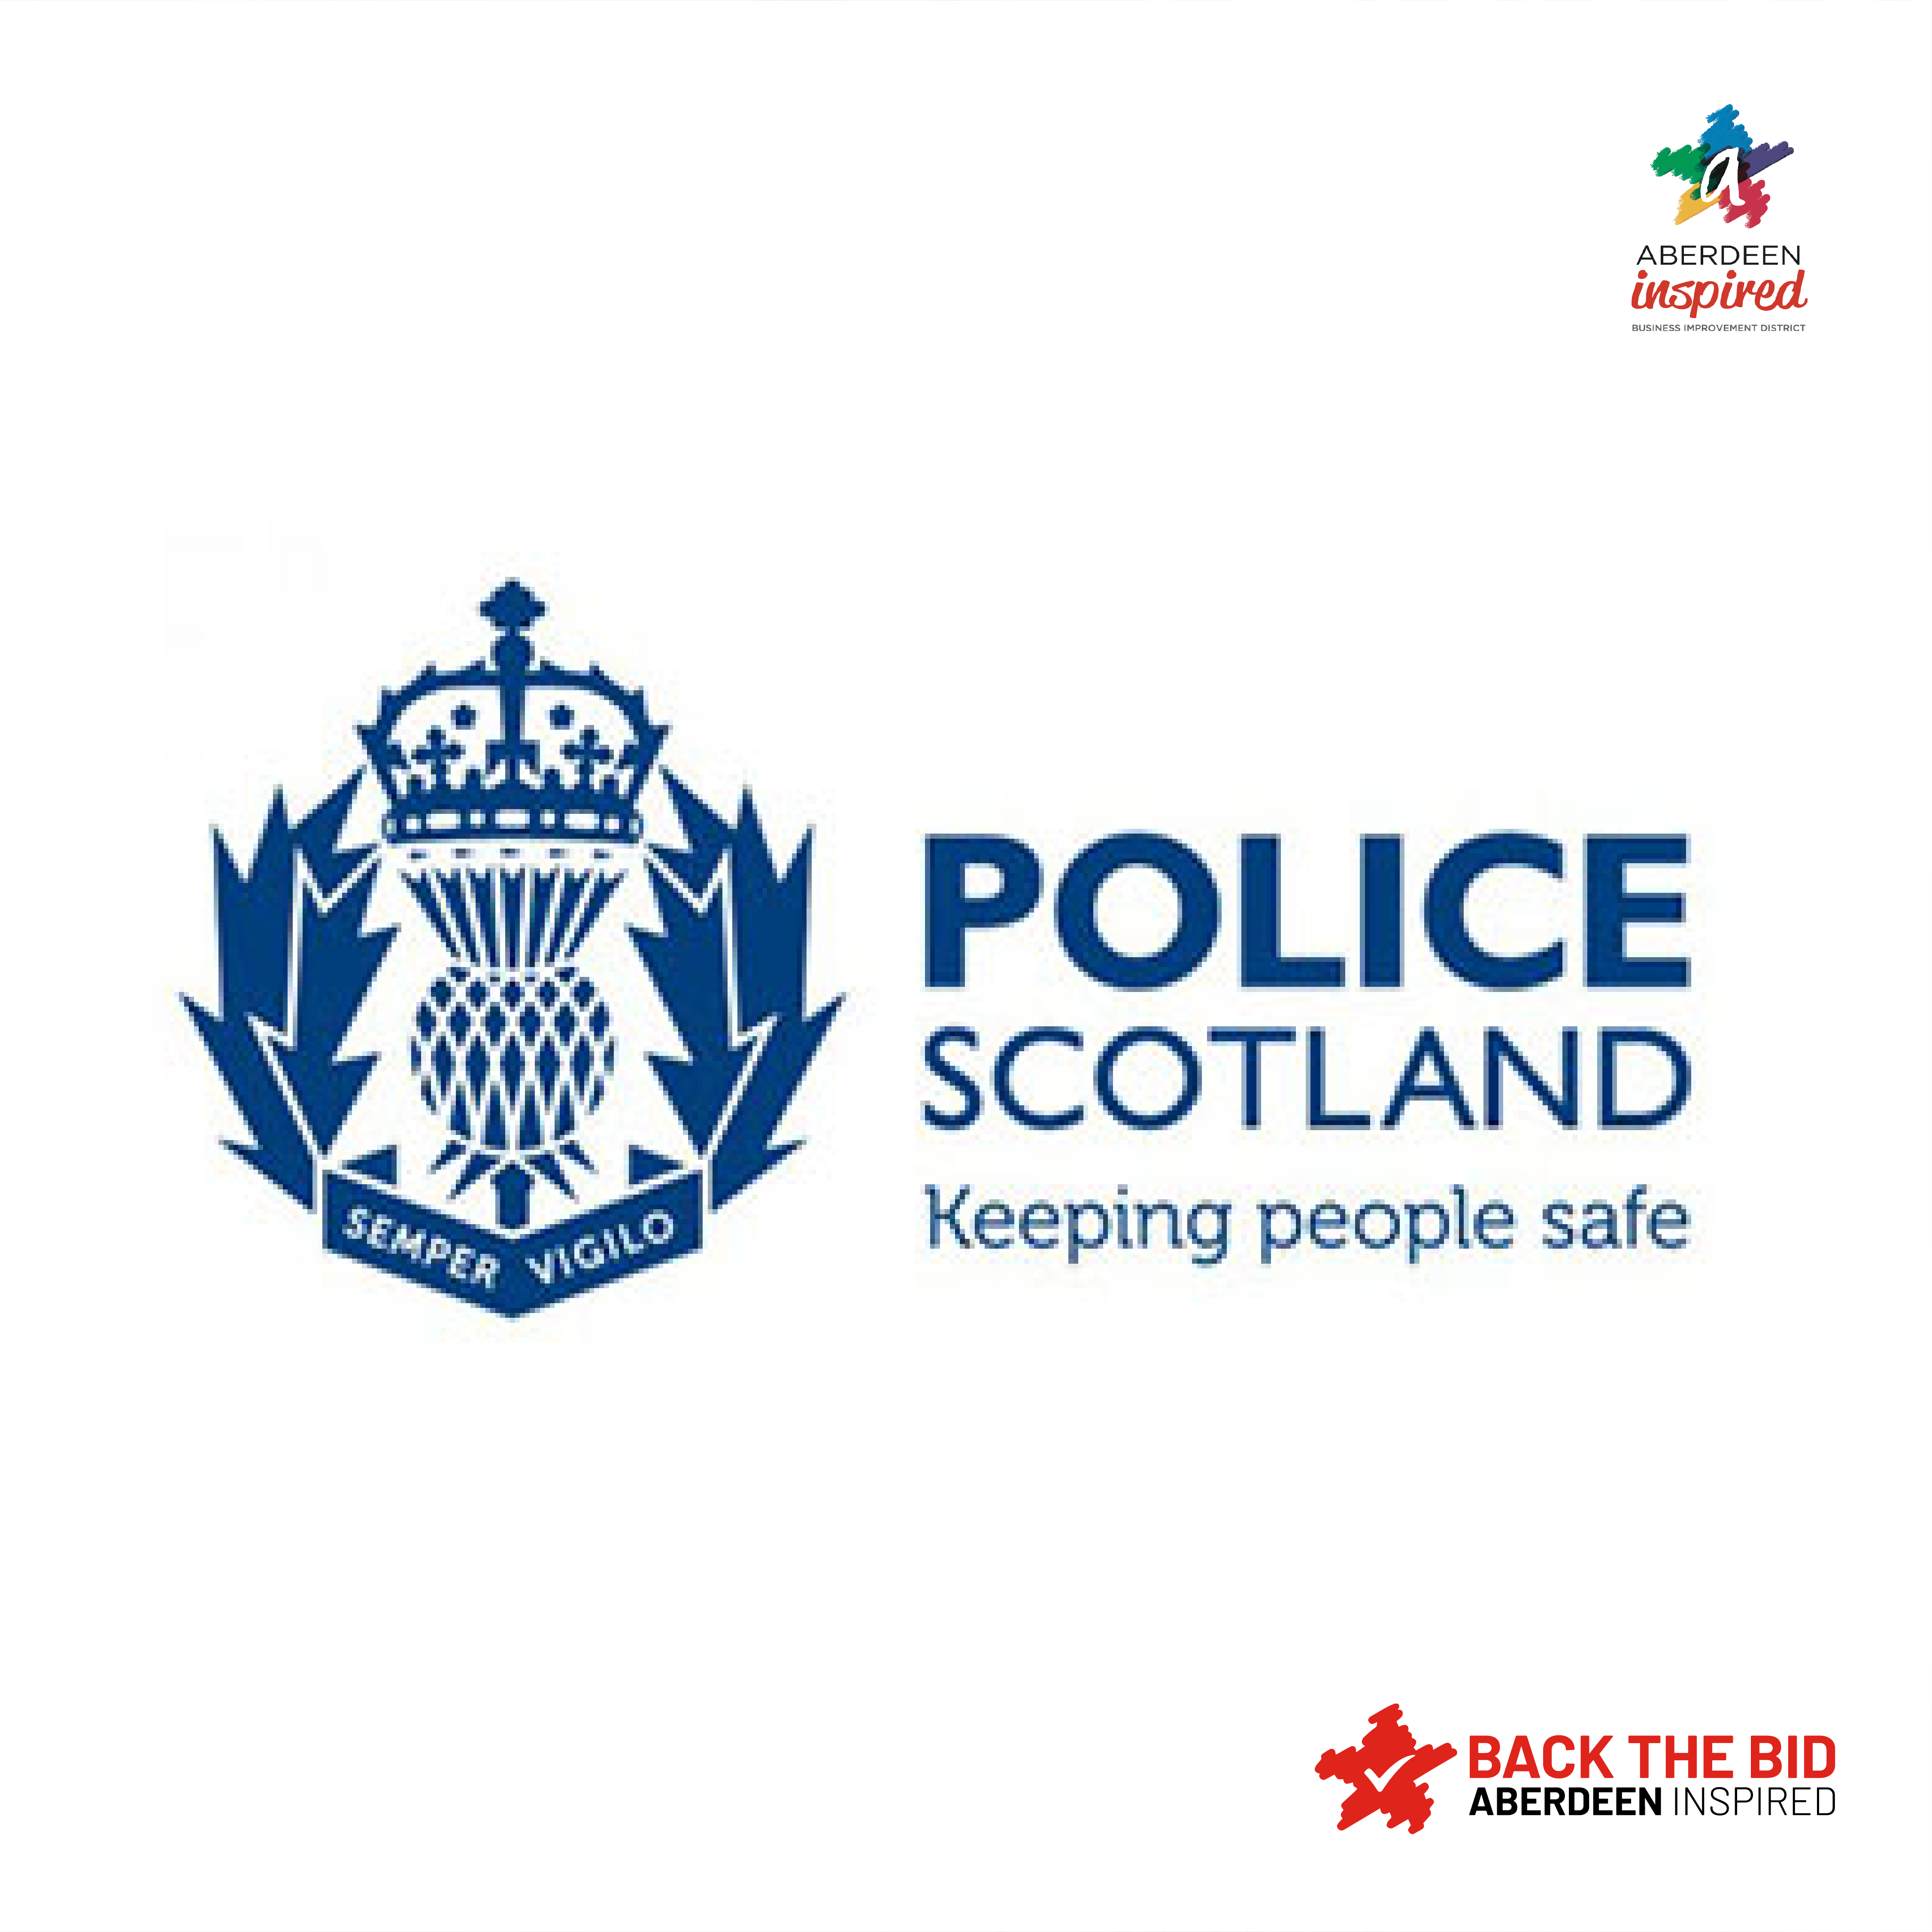 Police Scotland shows appreciation for Aberdeen Inspired's Back The Bid campaign